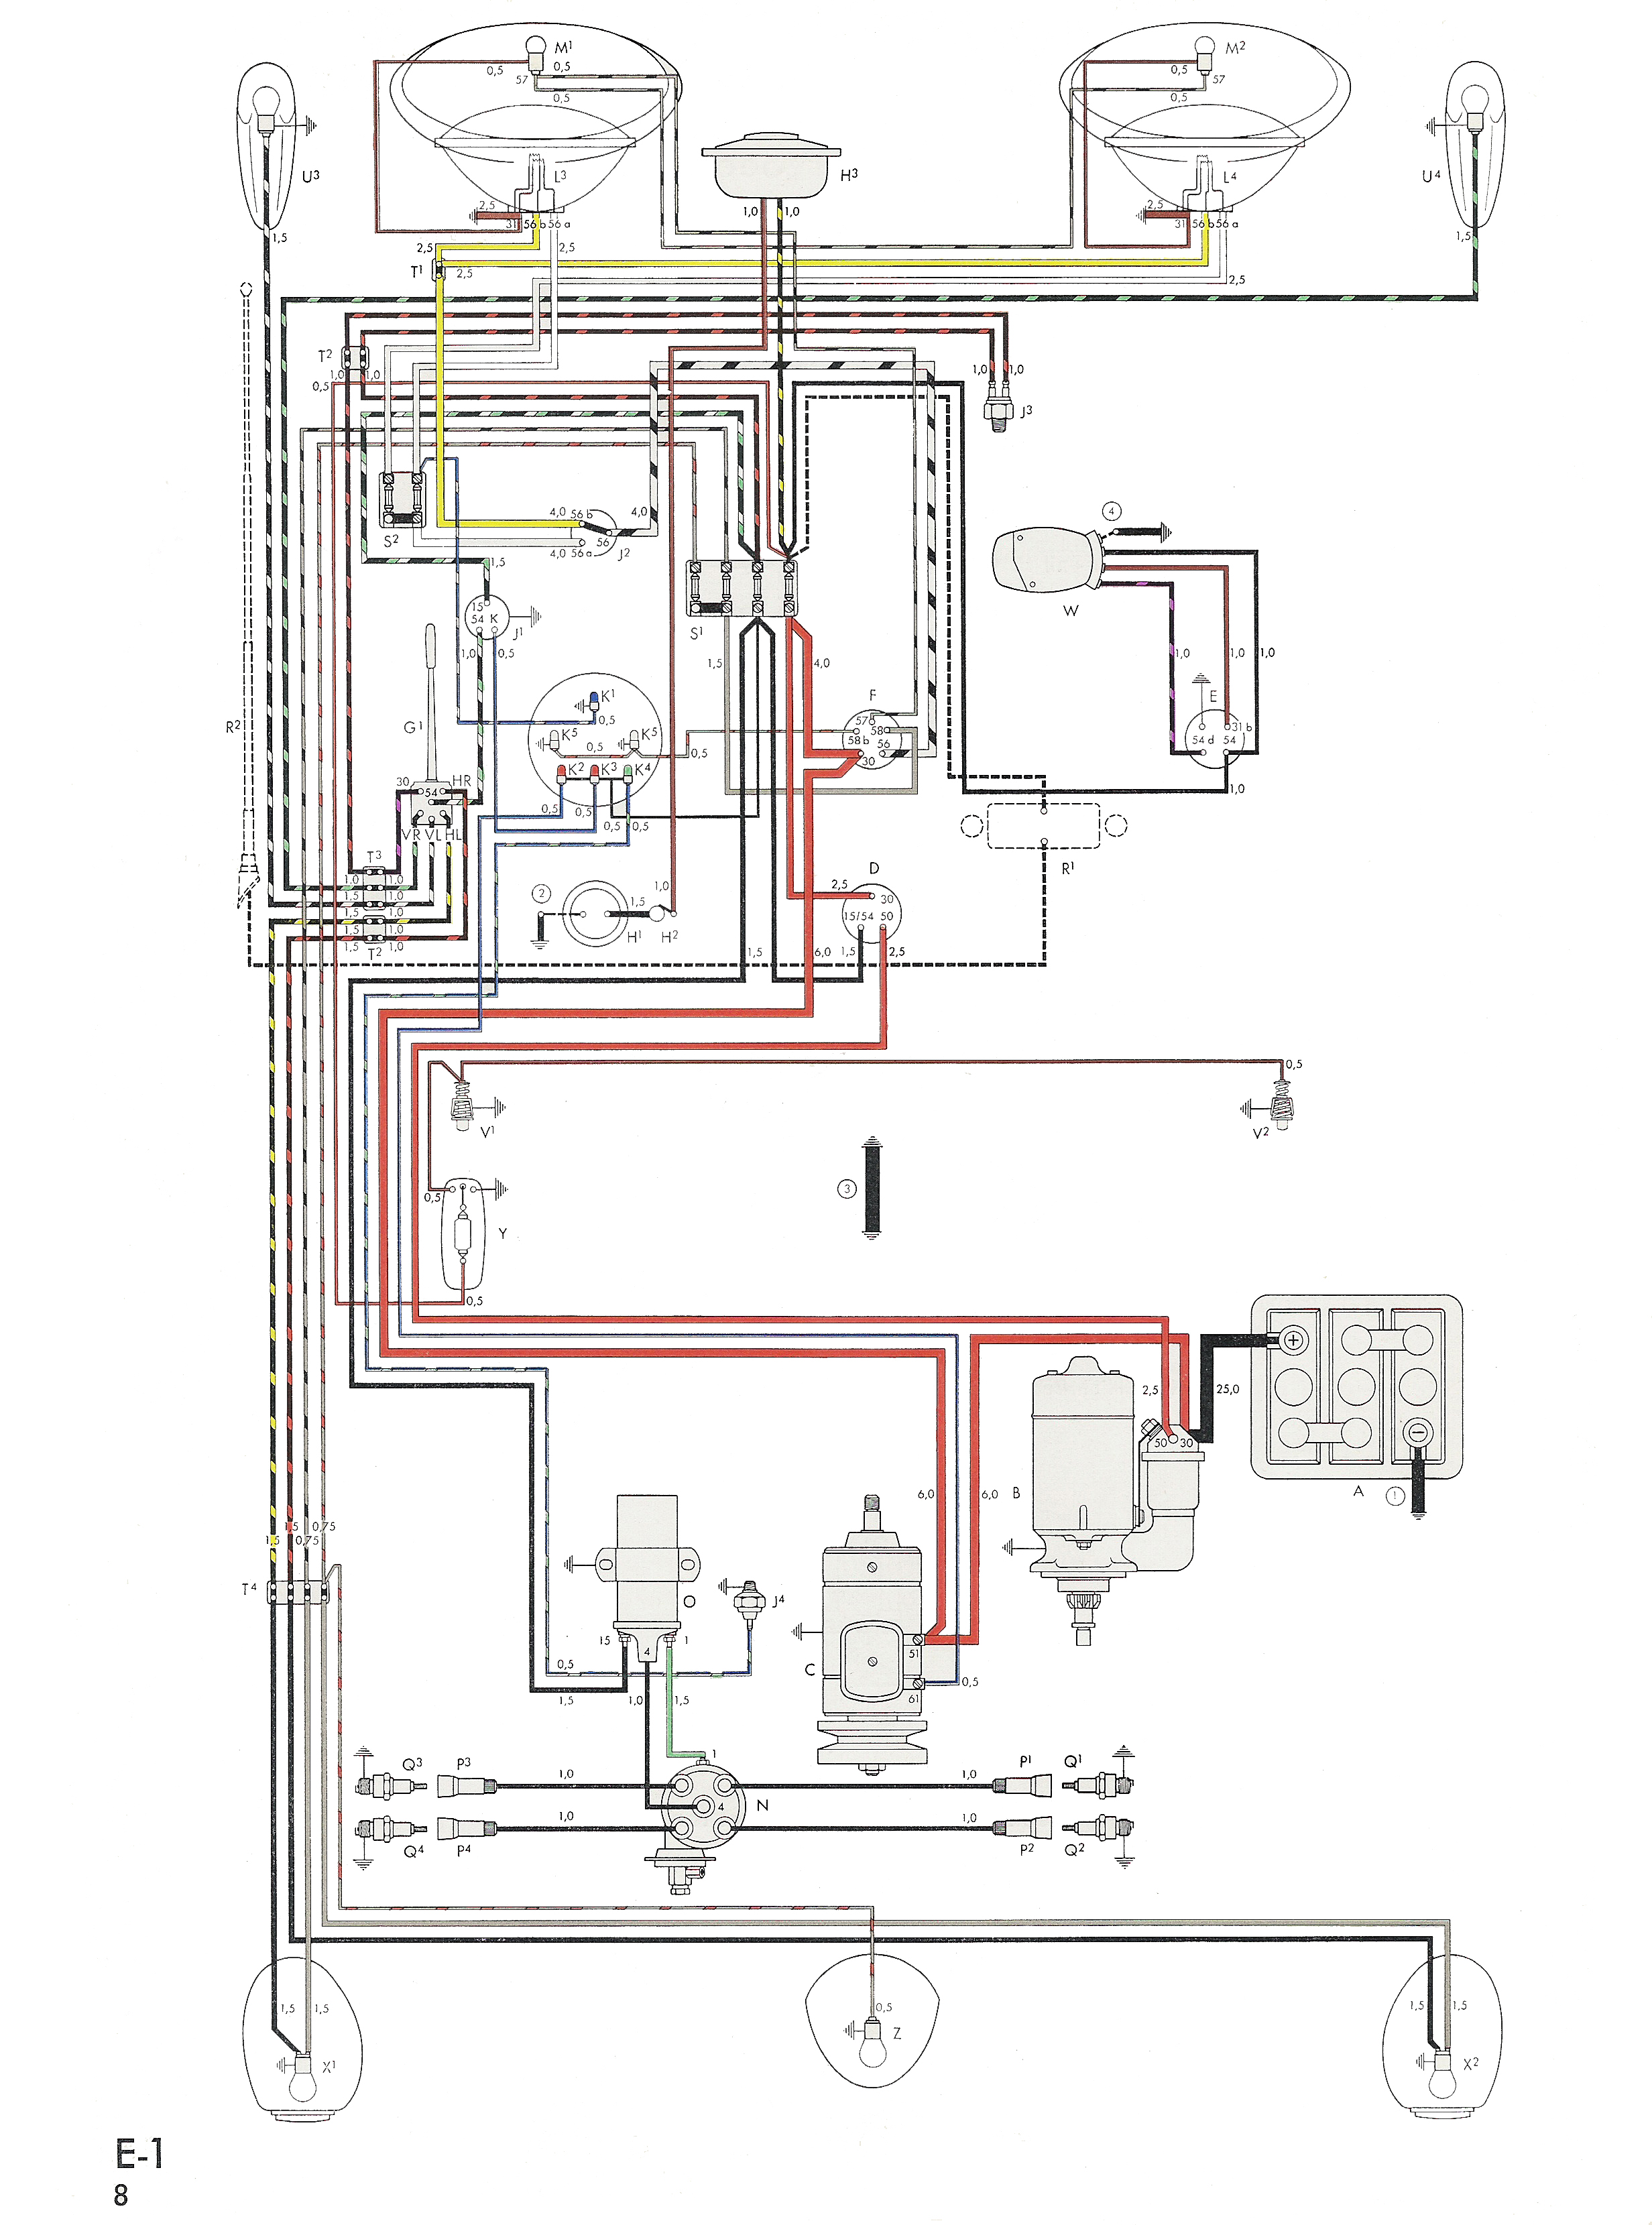 vw engine wiring diagram wiring diagram \u2022 1974 karmann ghia wiring diagram thesamba com type 1 wiring diagrams rh thesamba com vw bug engine wiring diagram vw abf